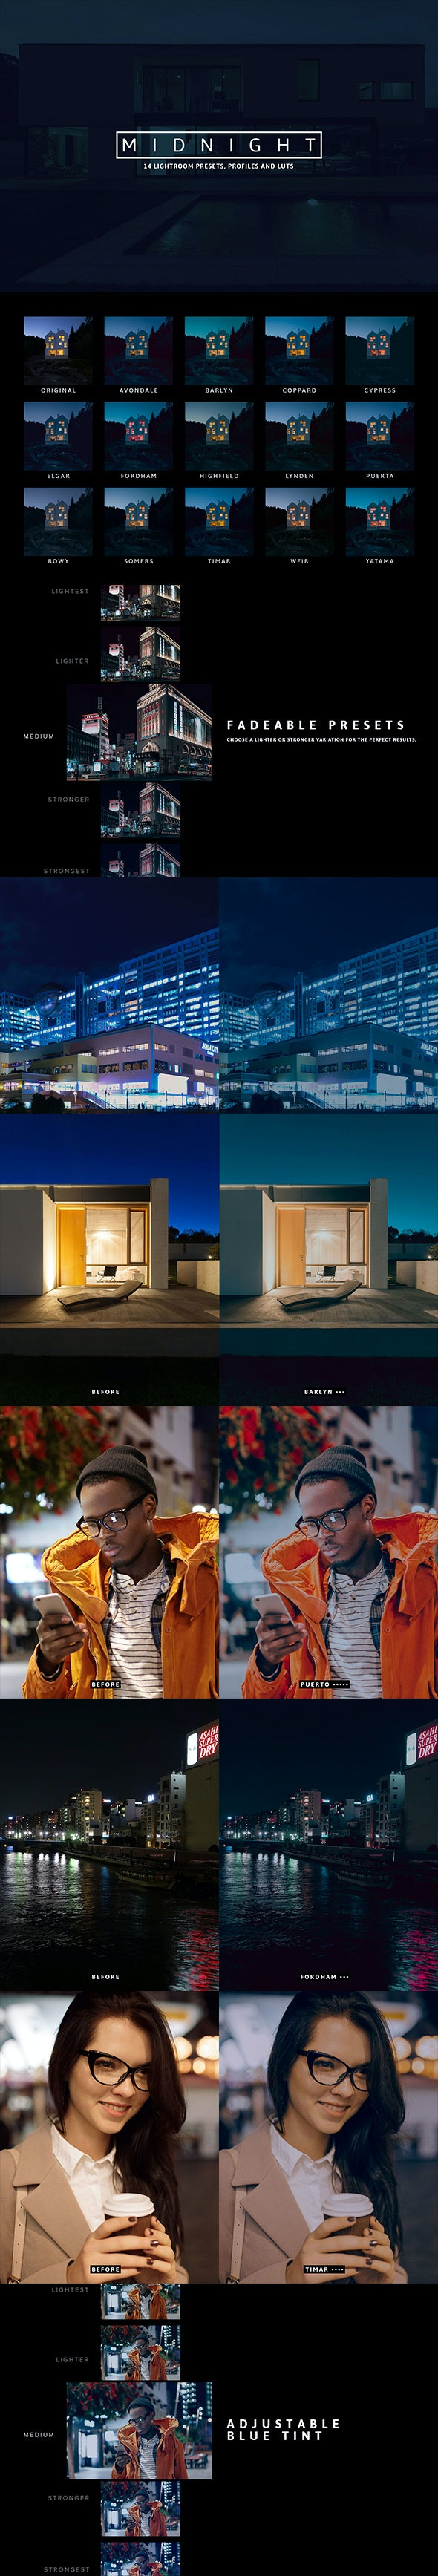 14 Mightnight Presets and Profiles - Lightroom Presets Add-ons